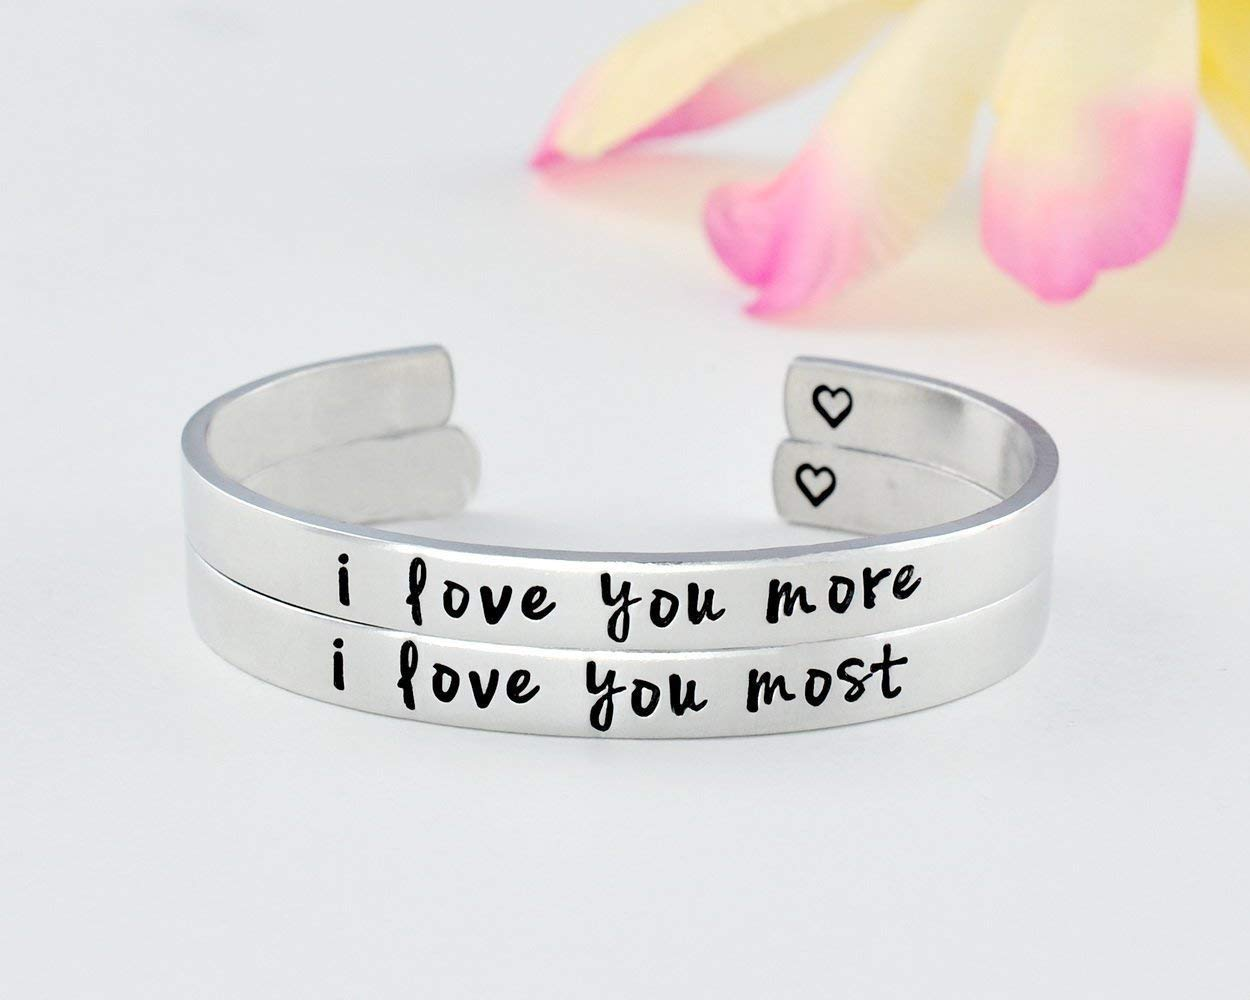 I Love You More I Love You Most - Hand Stamped Cuff Bracelets Set of 2, Mom Daughter Sisters Friends BFF Couples Family Love Gift, Mother's Day, Girlfriend Valentines Day Gift, V1